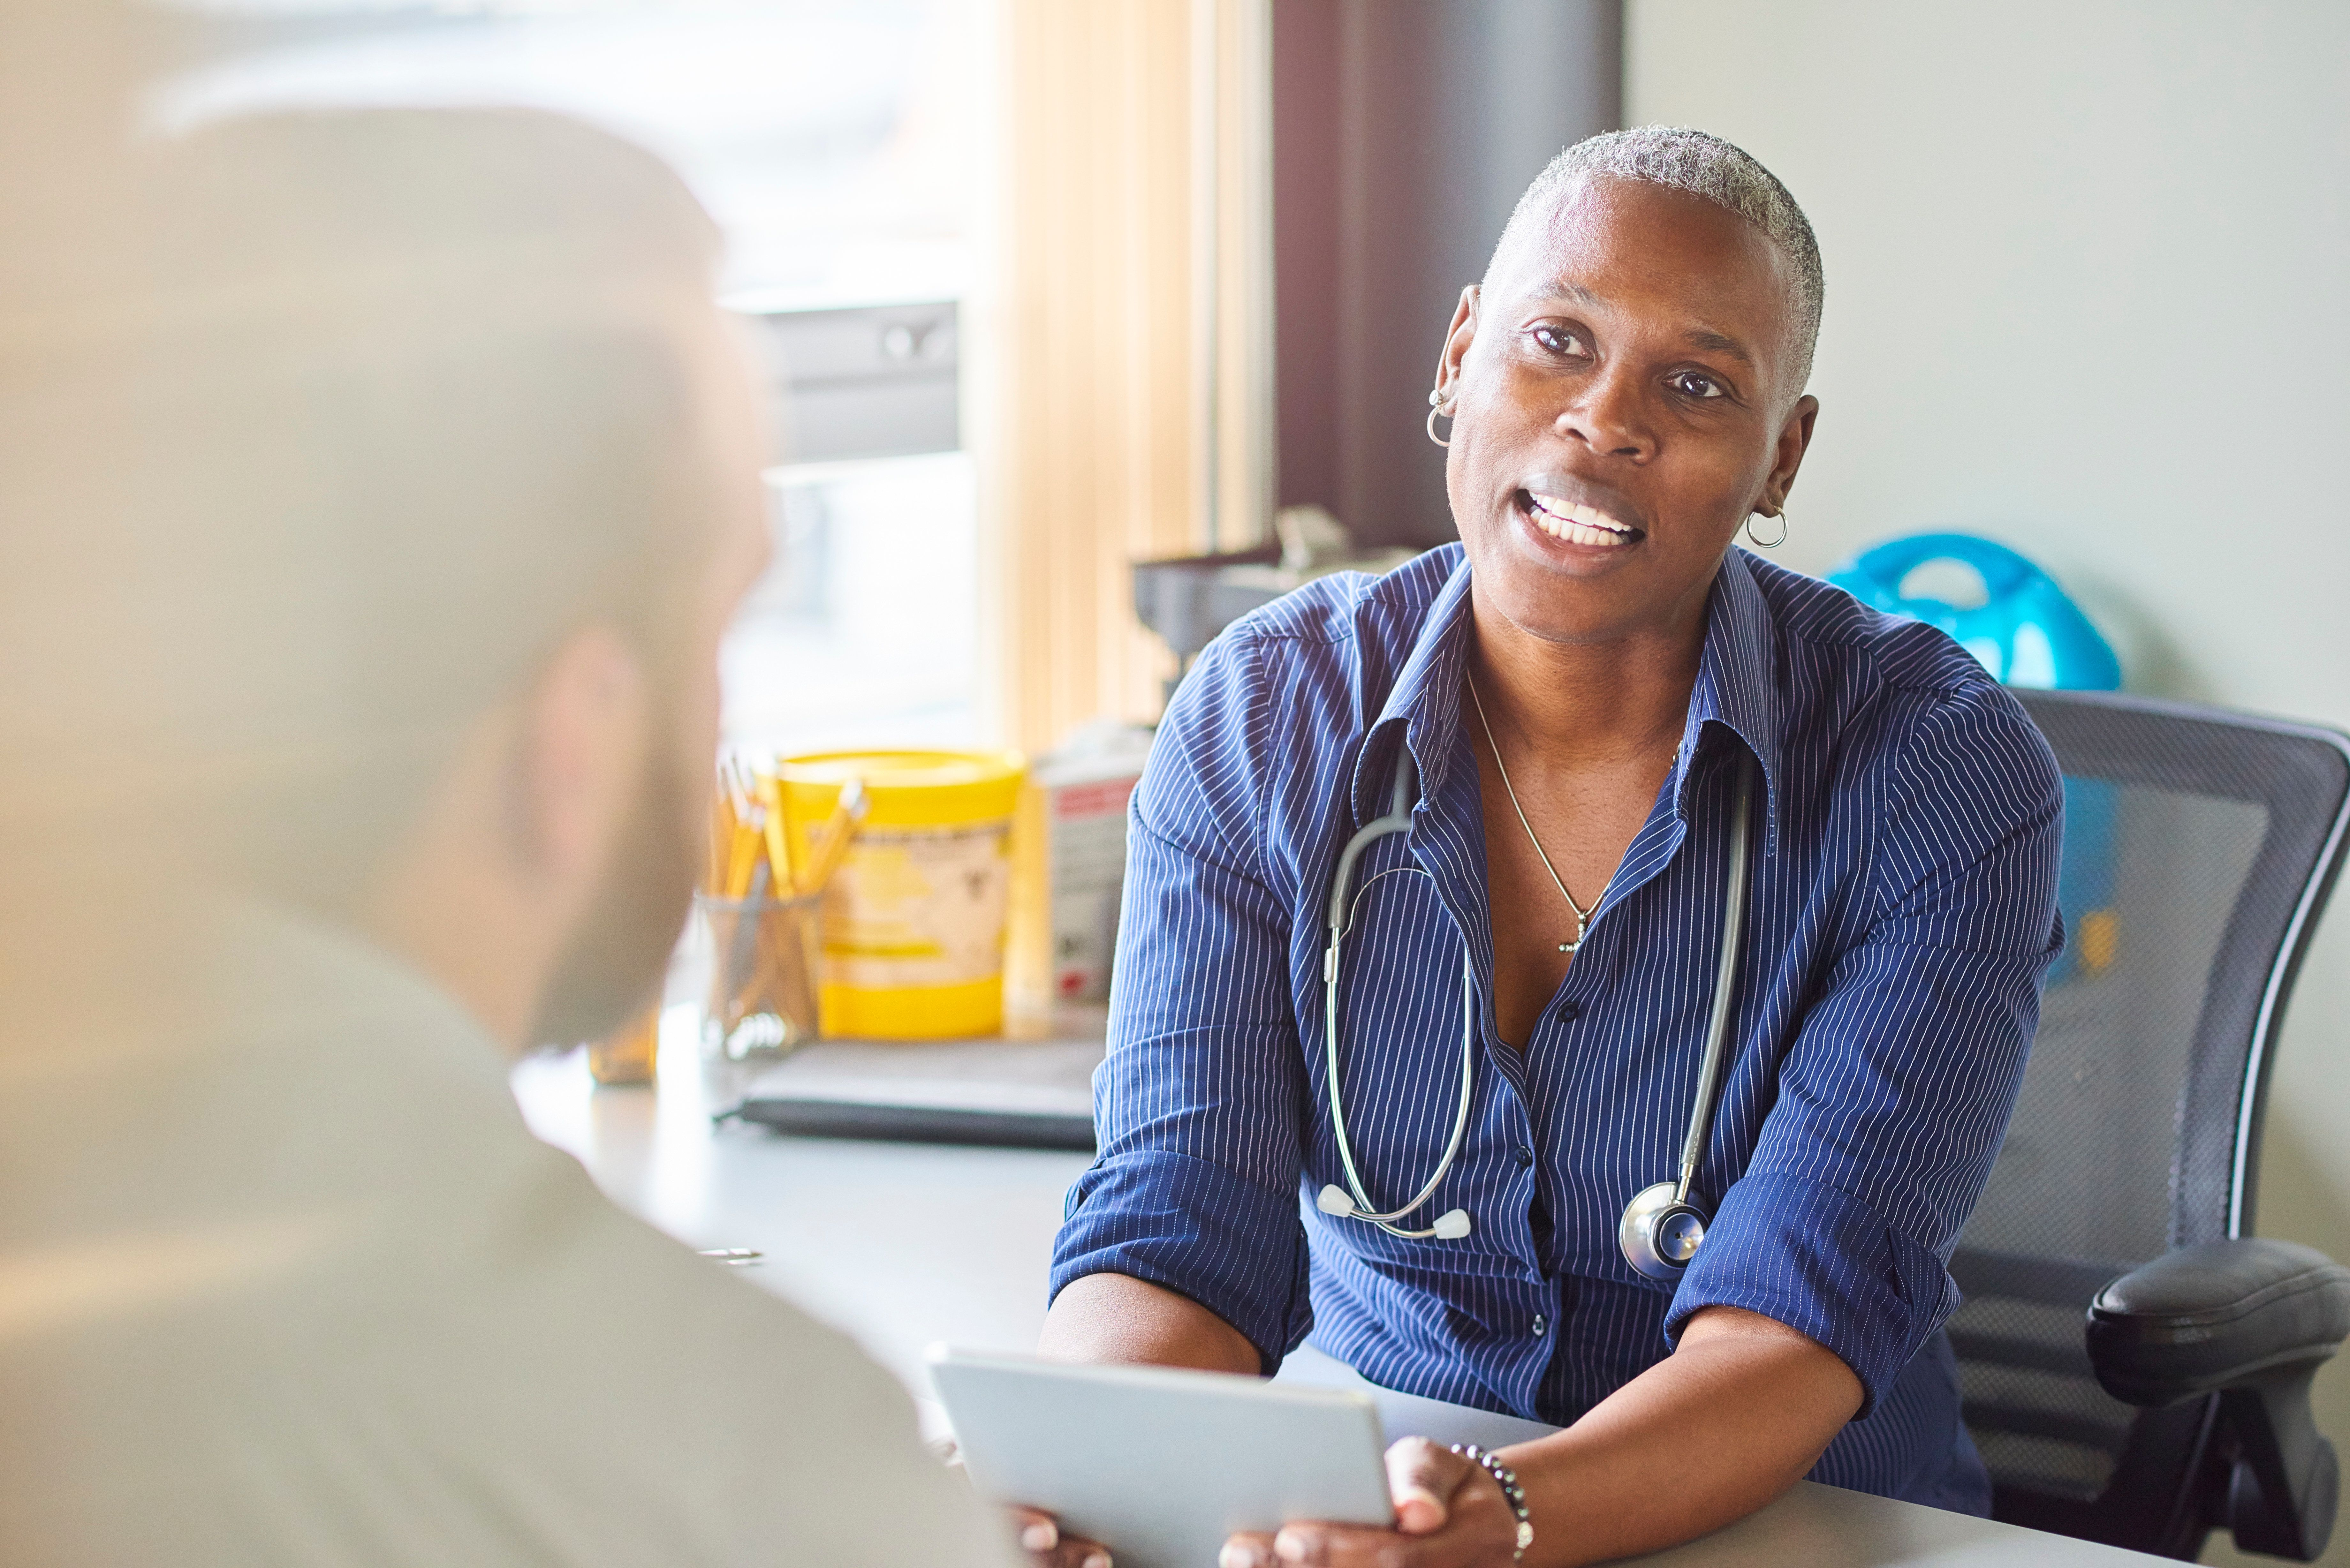 40% Of GP Appointments Now Involve Mental Health, Say